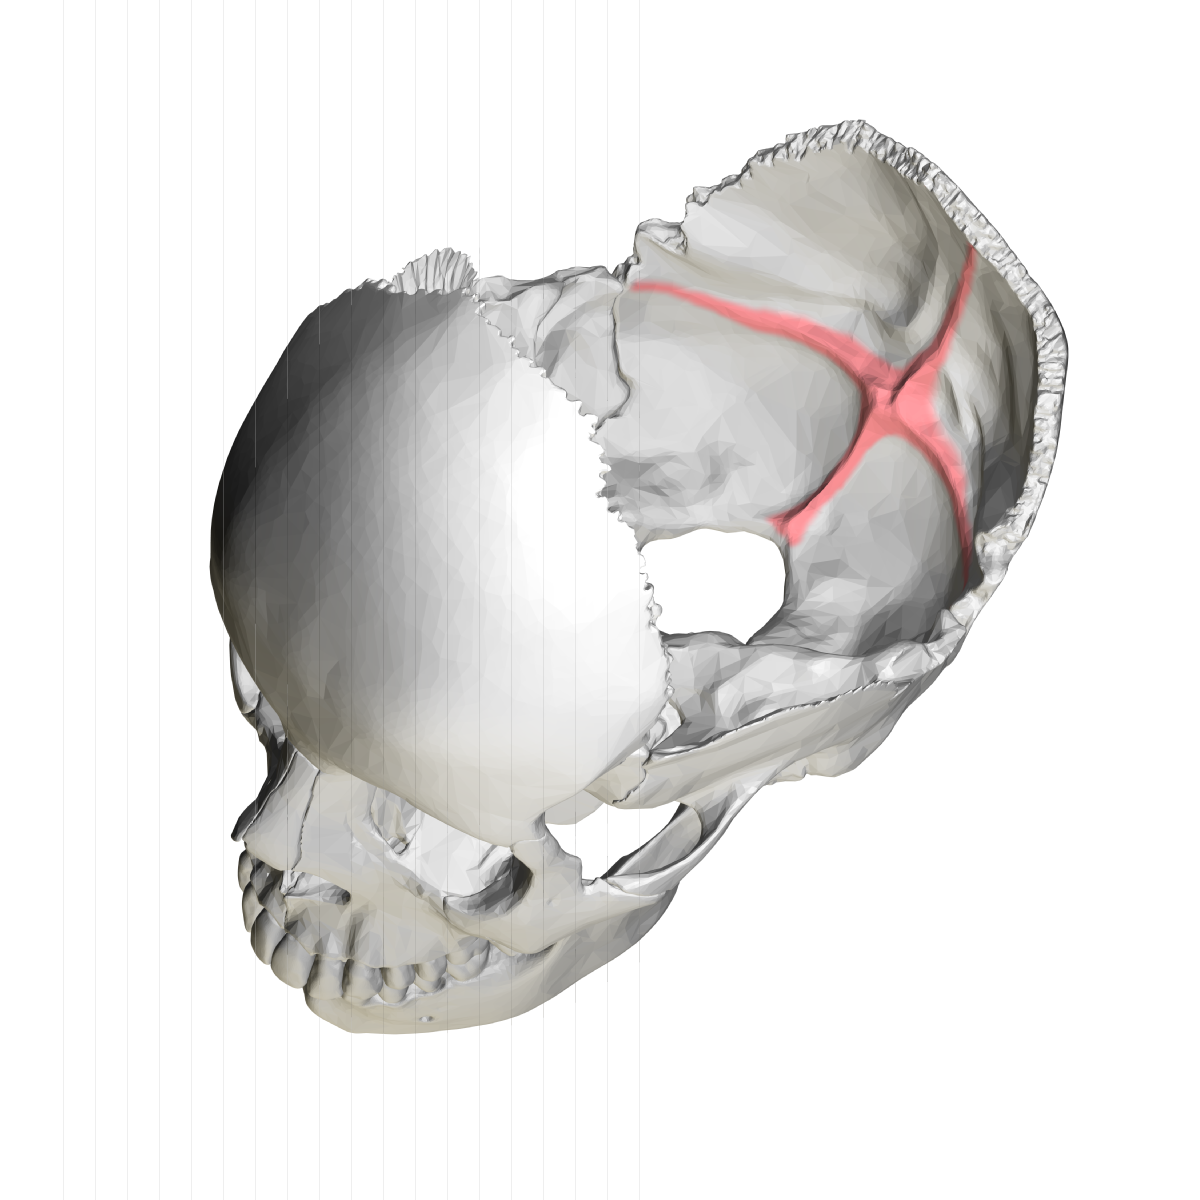 Cruciform eminence on frontal bone